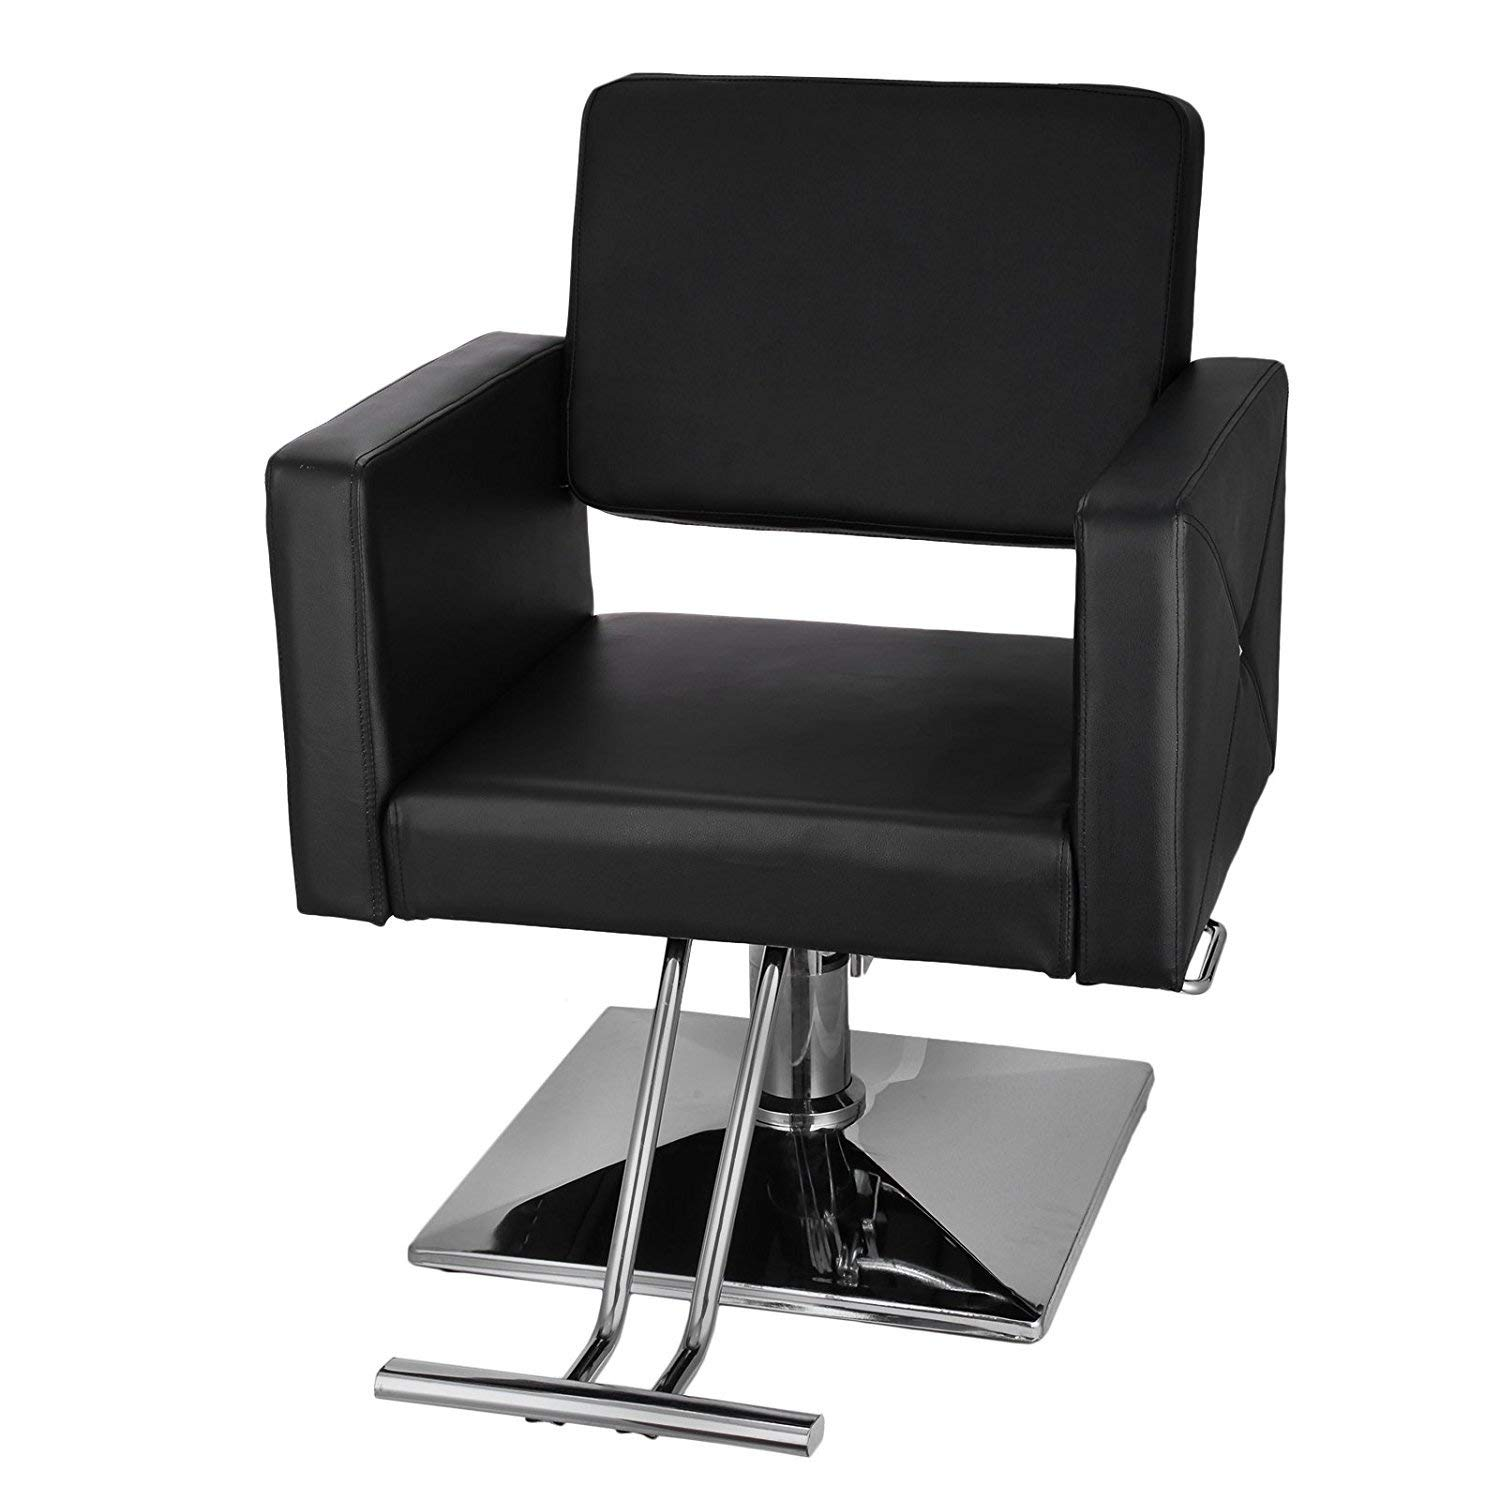 Mophorn Classic Hydraulic Barber Chair Comfort Styling Chairs for Salon Modern Hydraulic Lift Square Barber Chair Salon Beauty Equipment Hairdresser Tattoo Shaving Barber Chair